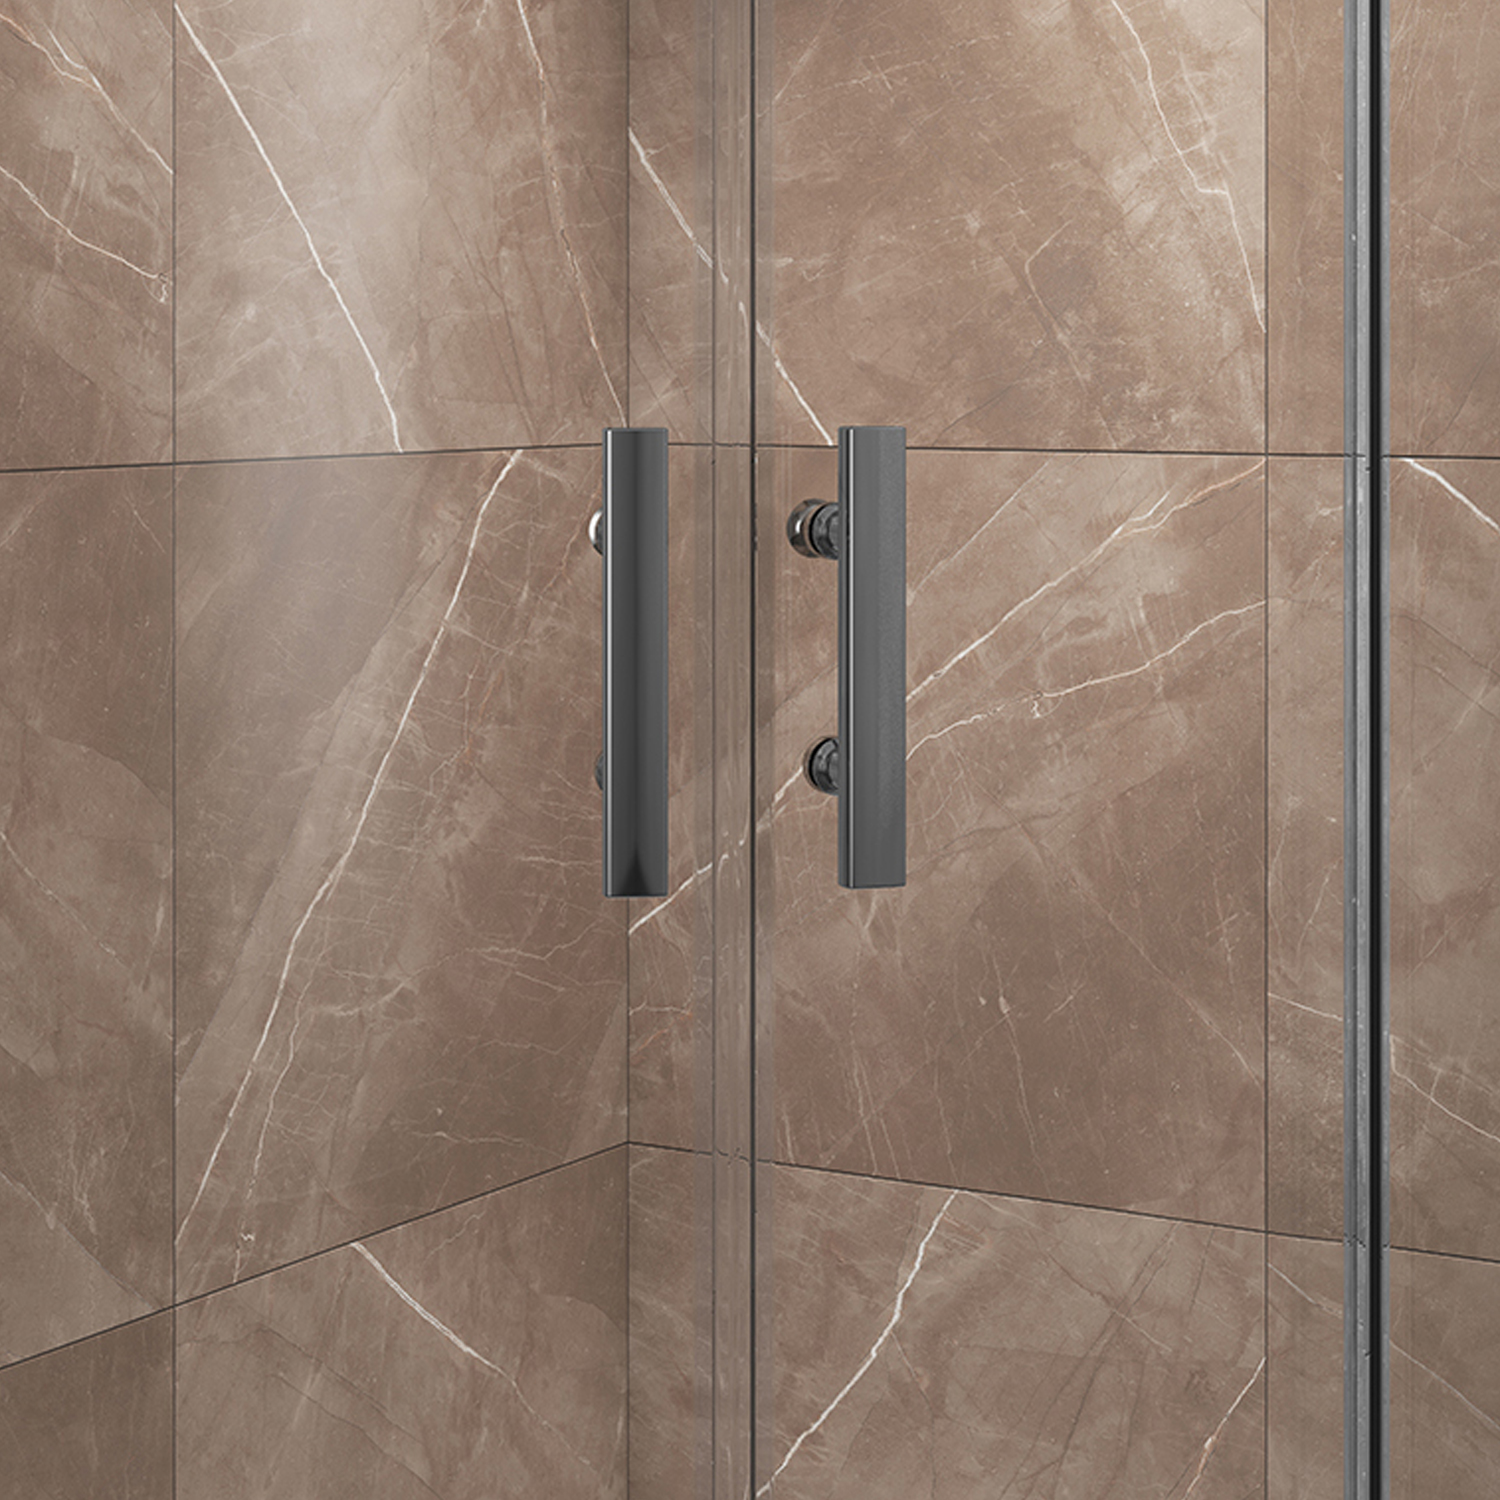 Cali Cass Six Quadrant Shower Enclosure 800mm x 800mm - 6mm Glass